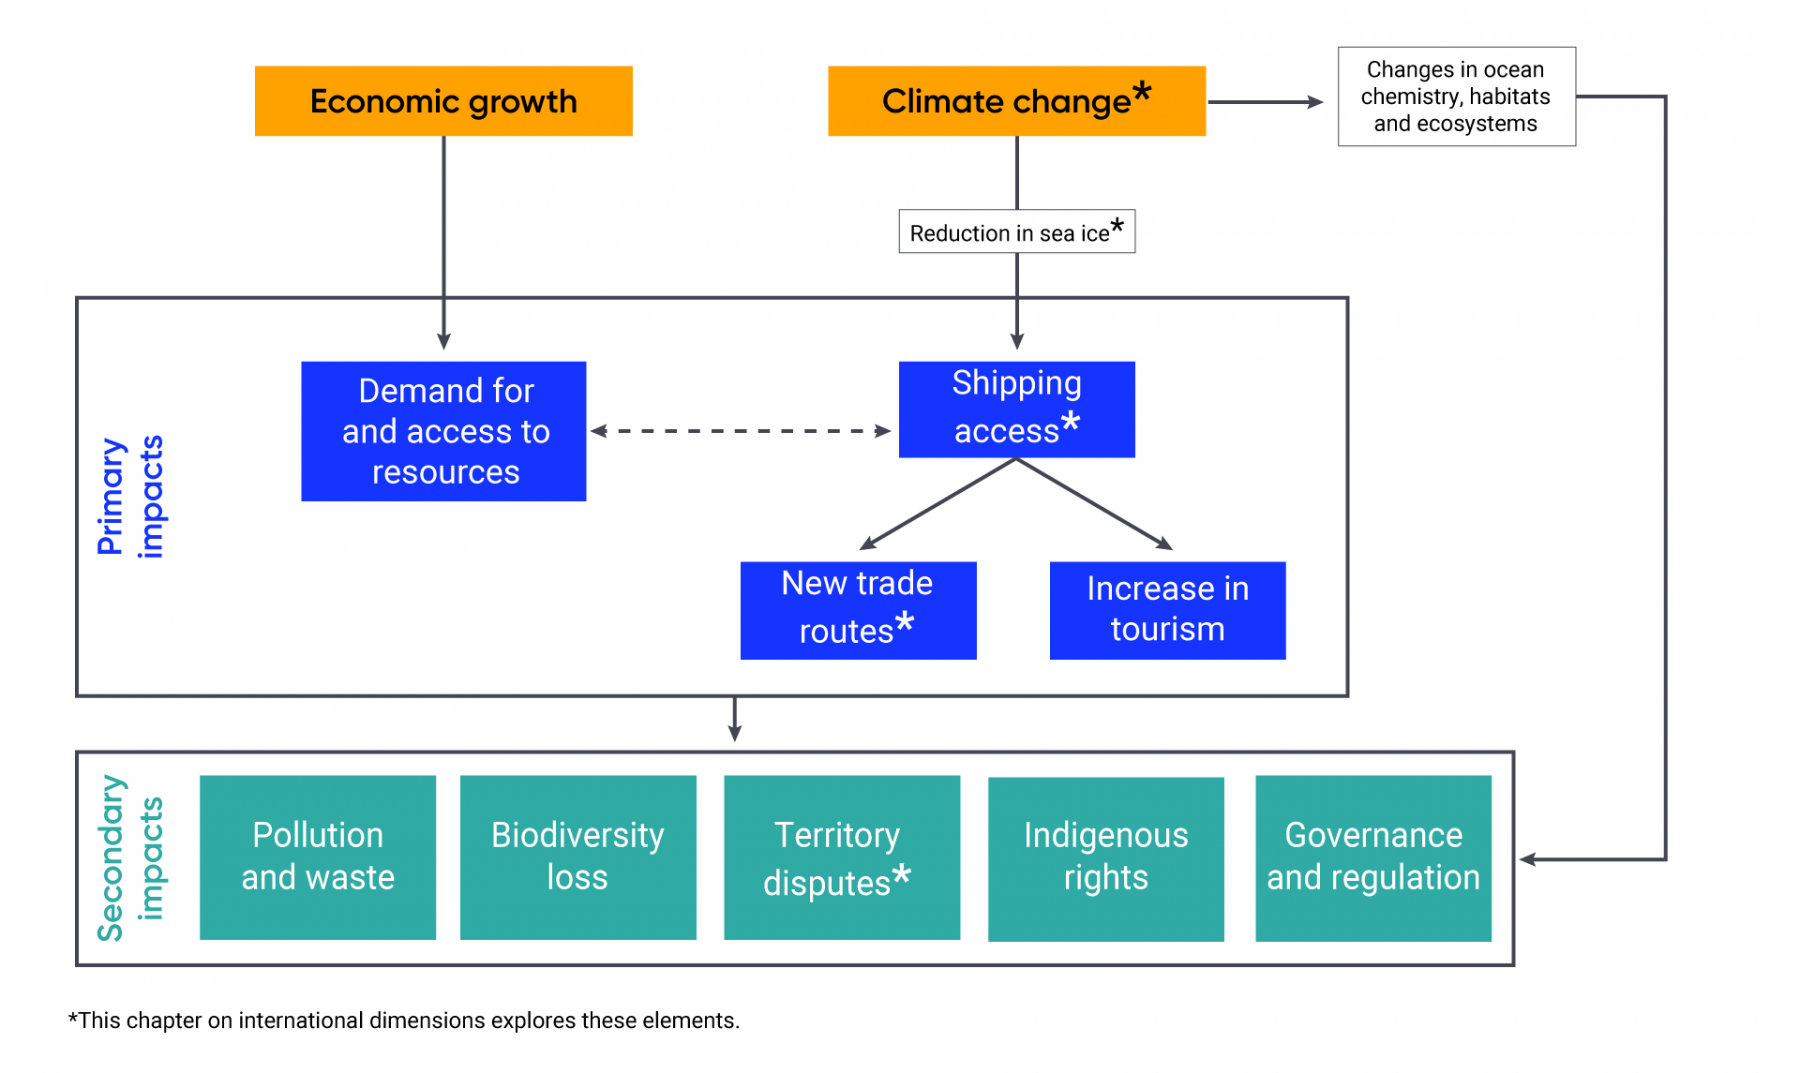 Diagram illustrating how economic growth and climate change are global drivers of Arctic marine change. Climate change leads to a reduction in sea ice, and therefore increased shipping access. Shipping access is also impacted by demand for and access to resources determined by economic growth. Increased shipping access creates new trade routes and increased tourism. These new trade routes and increased tourism create secondary climate impacts, including increased pollution and waste, biodiversity lost, territory disputes, and impacts on Indigenous rights, governance, and regulation. The International Dimensions chapter focuses on climate change, shipping access, new trade routes, and territory disputes.